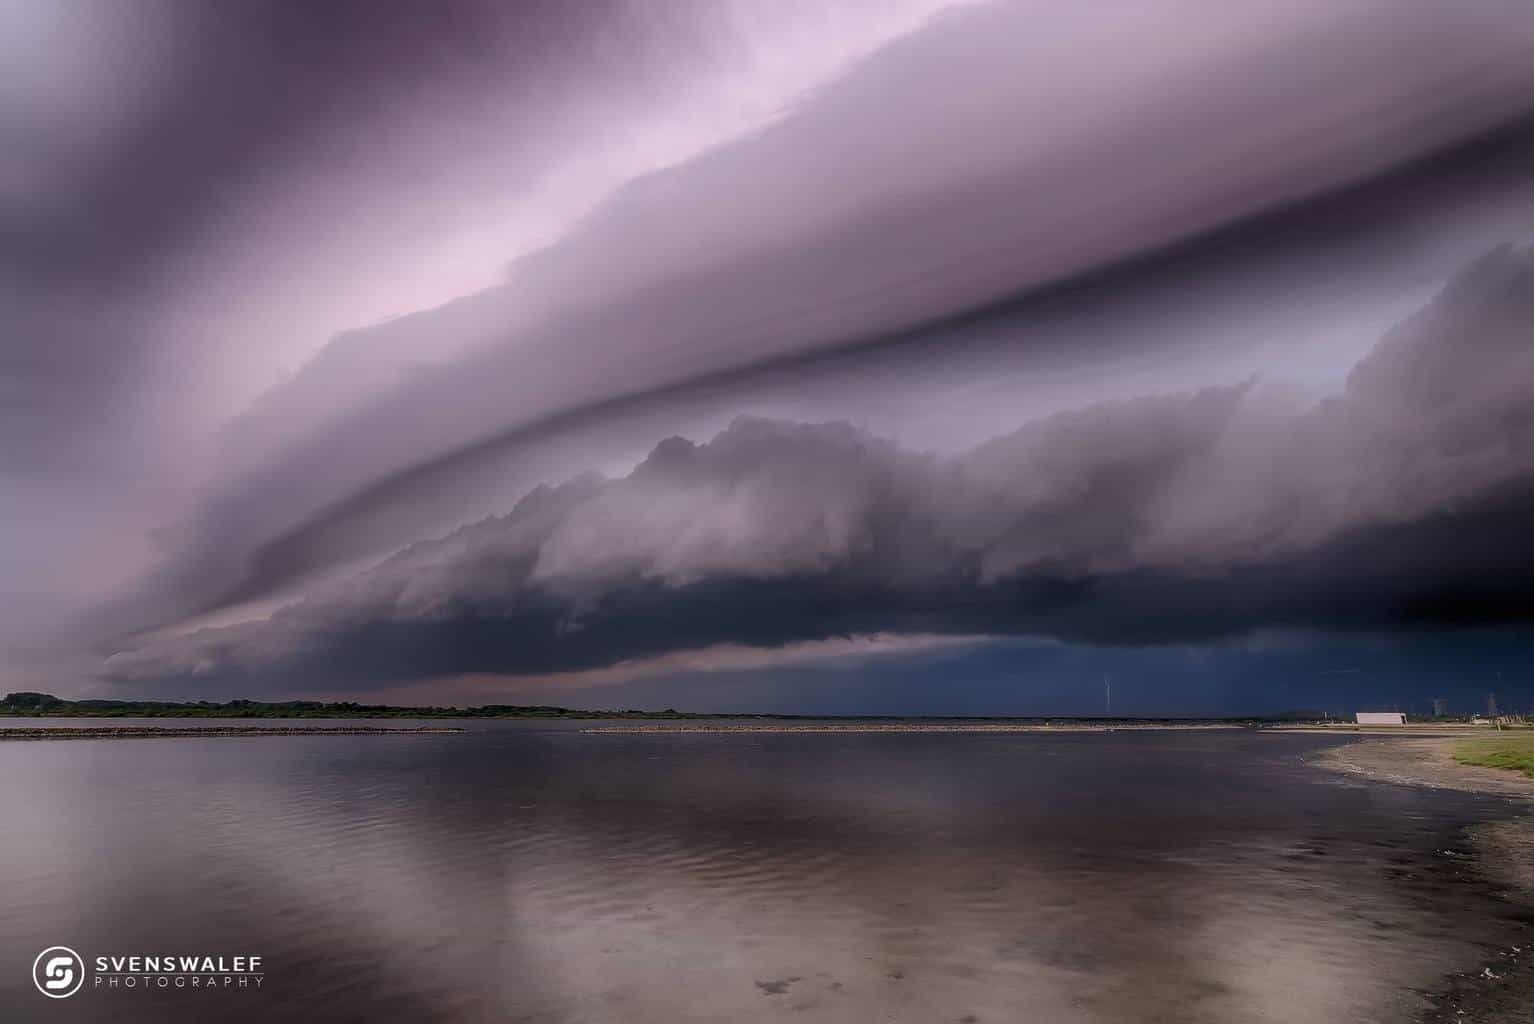 Exceptional shelf cloud on a cold front boundary near Rockanje, the Netherlands. This system produced a rare meteorological phenomenon, a meteo-tsunami.